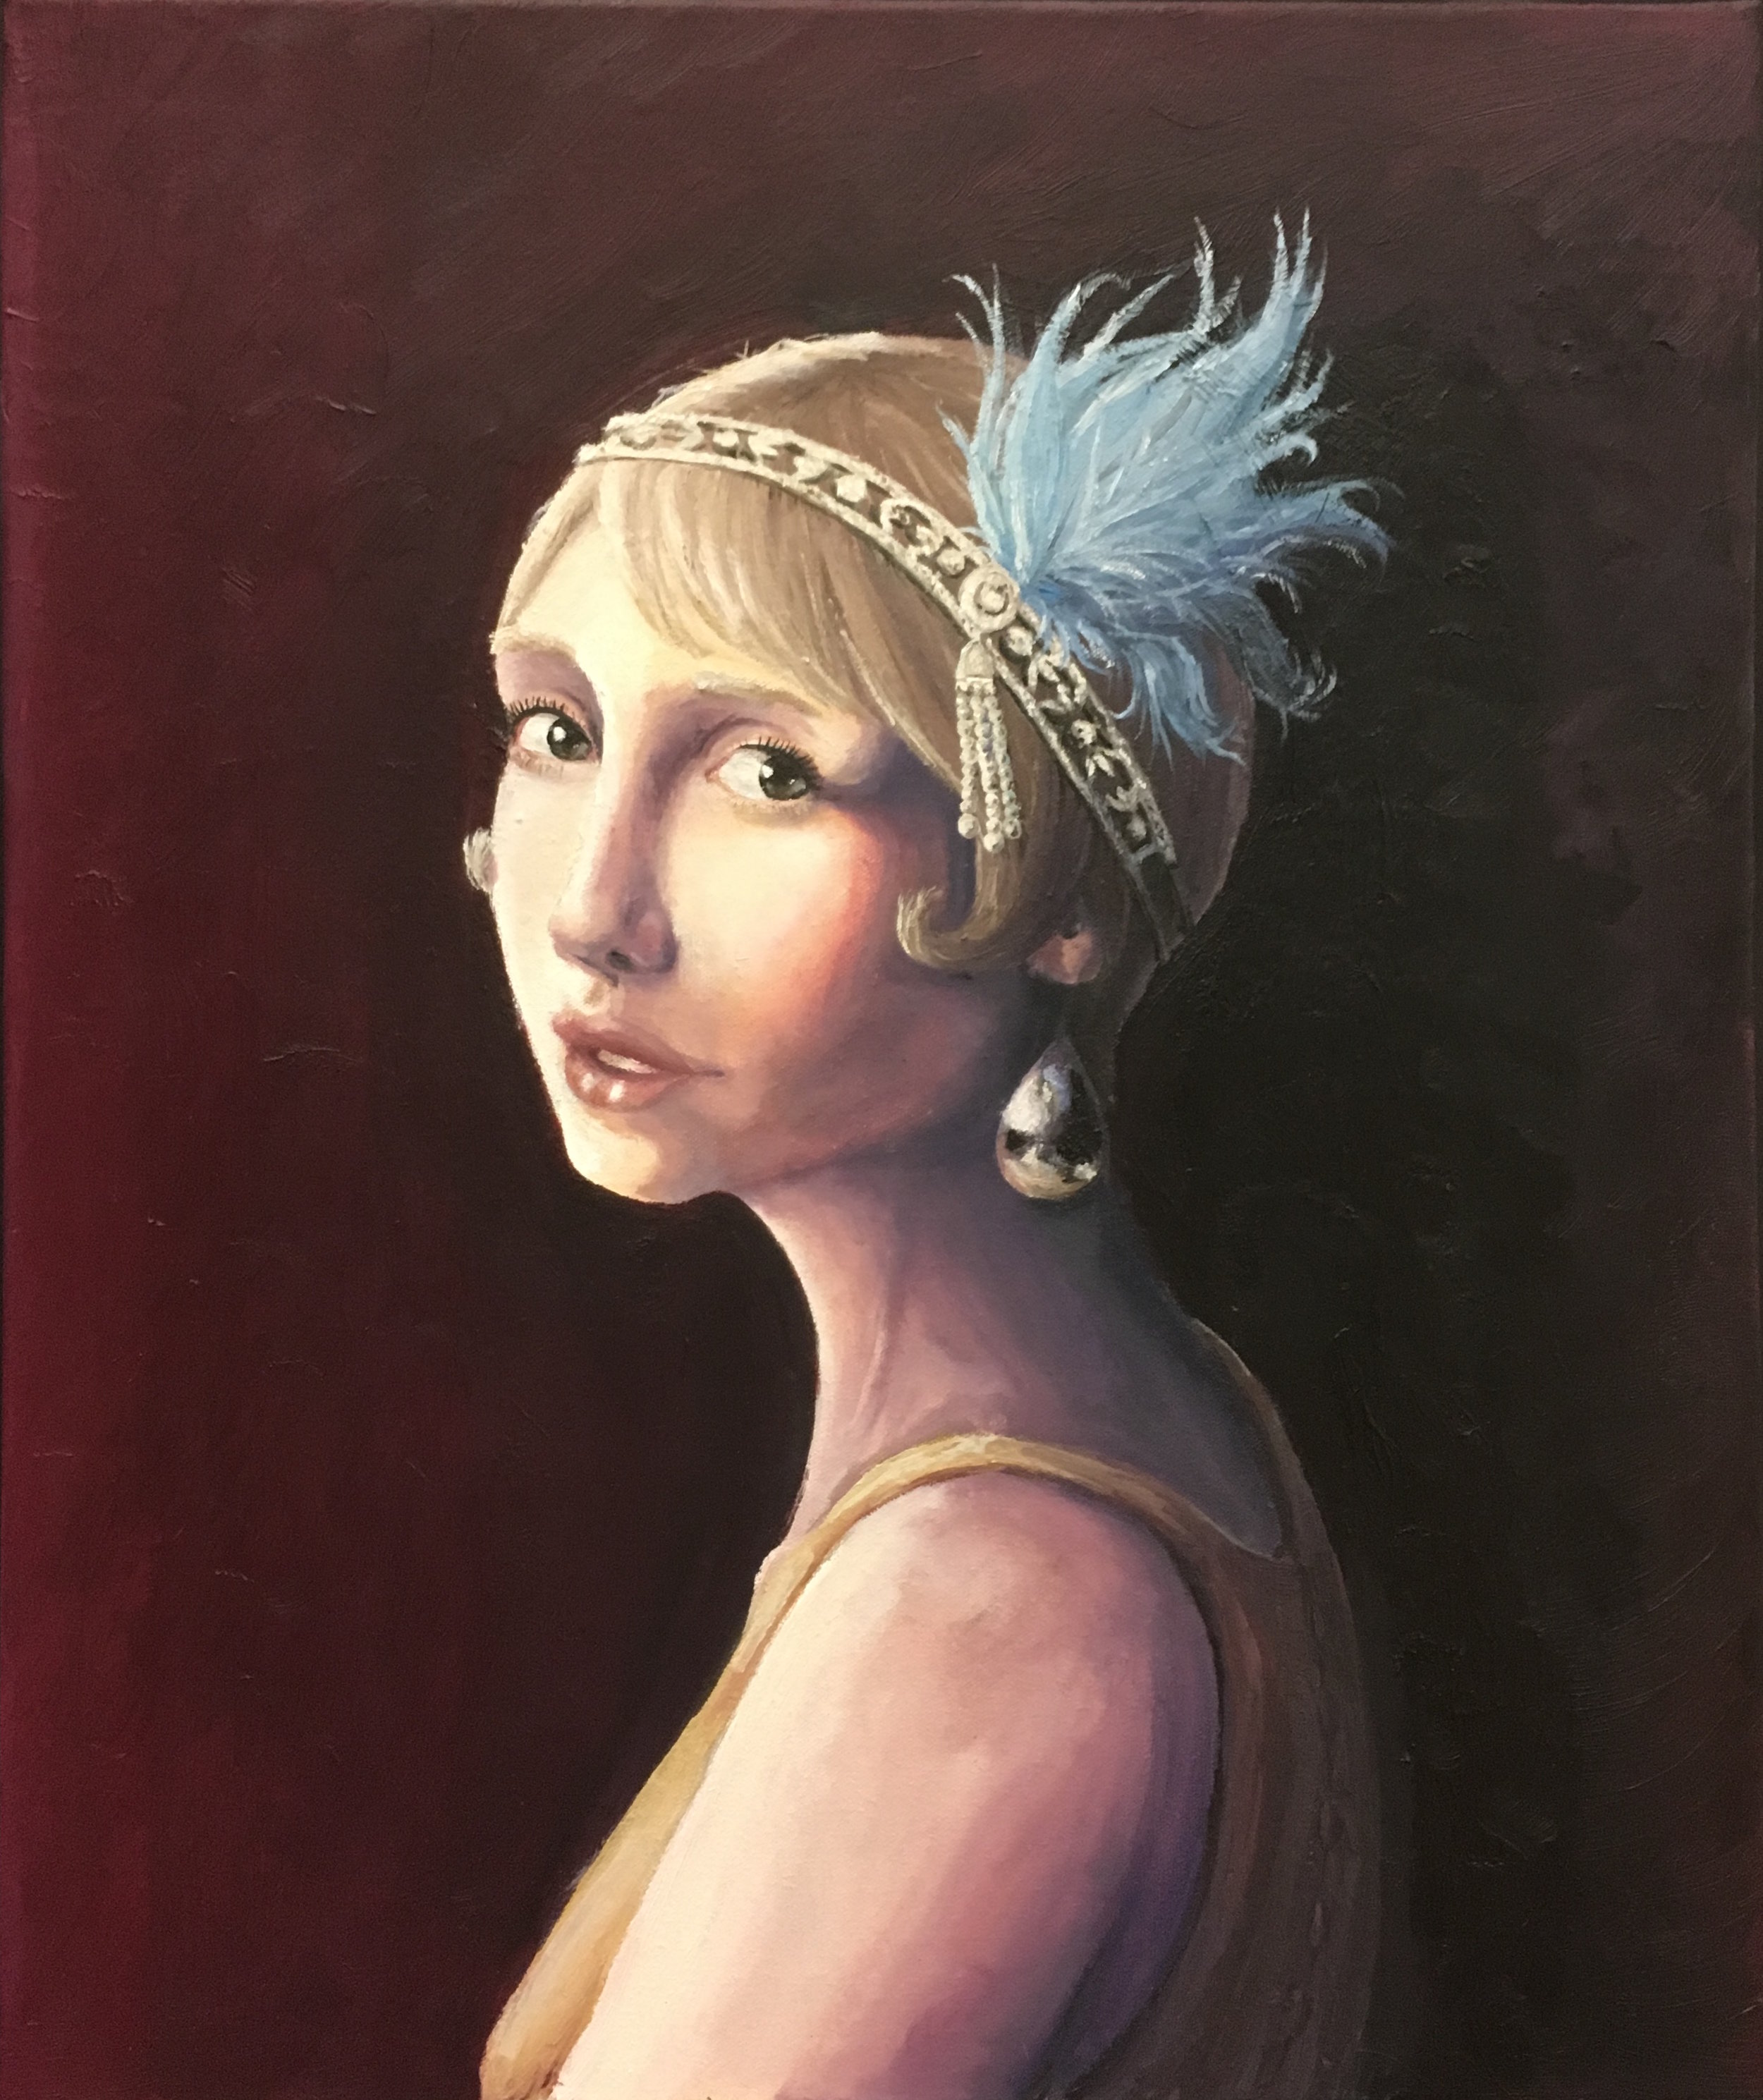 Phelicia Belle-Joie - Oil on canvas, 20 x 24'